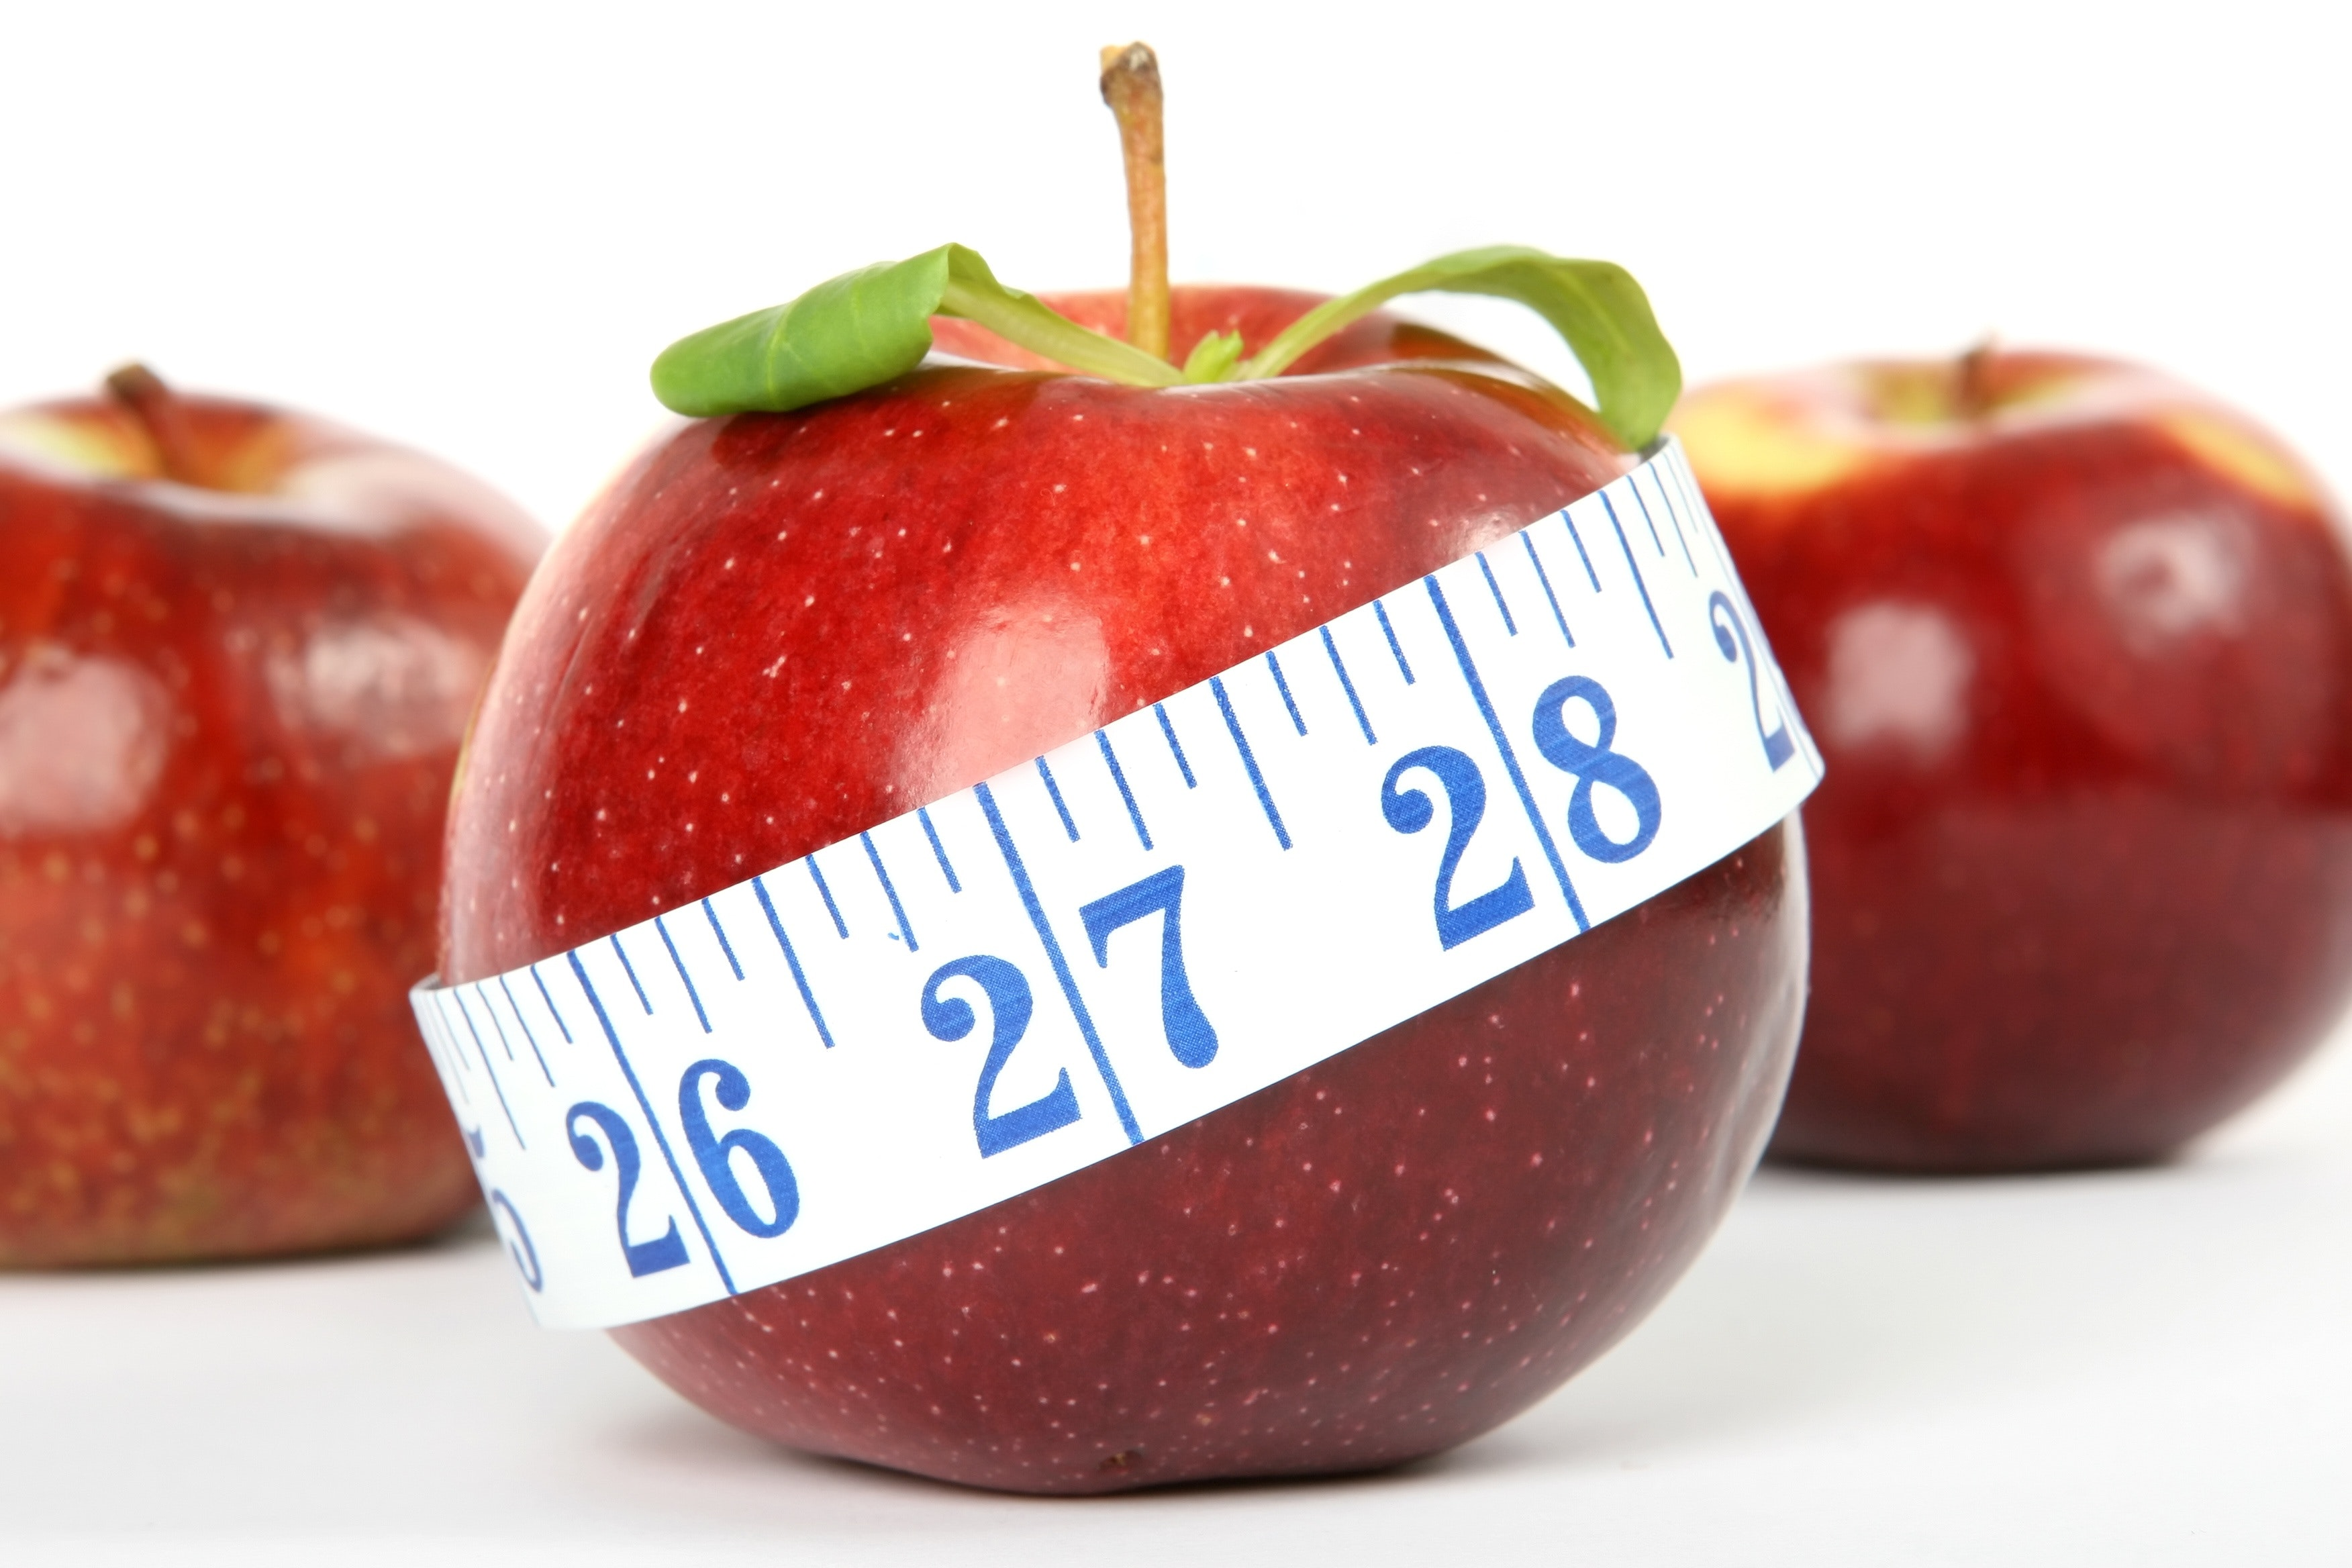 Simple carb diet for weight loss with cheatmeal